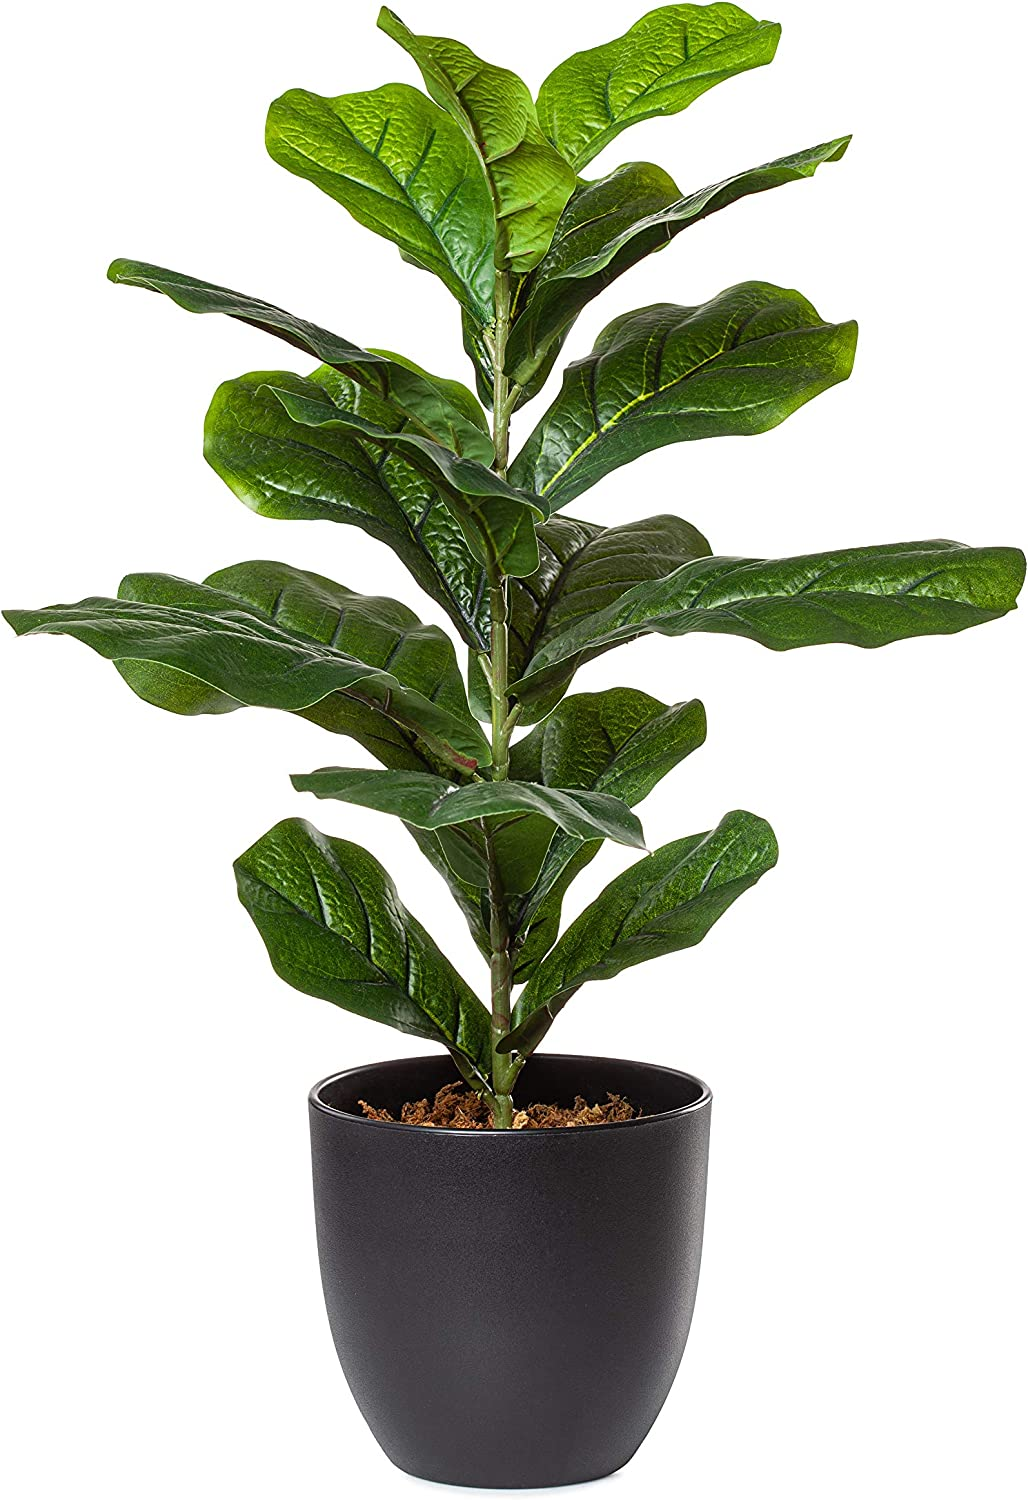 PLANTAE Artificial Fiddle Leaf Fig Tree Faux Realistic 22